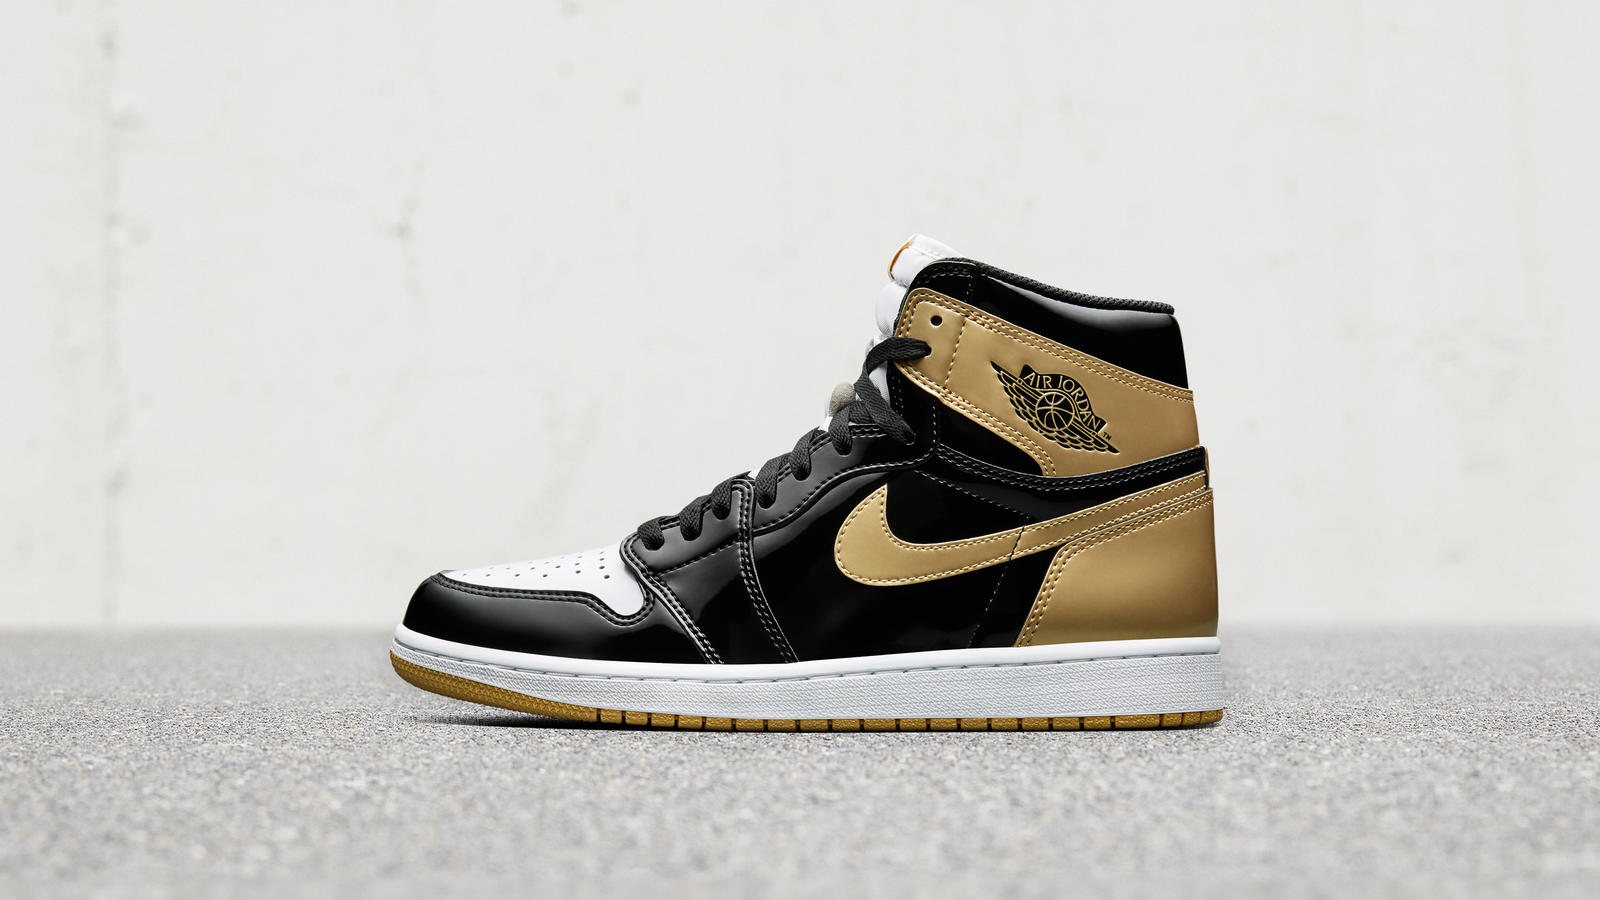 fbf2fc3bf32 Air Jordan 1 Top 3 Gold - Nike News